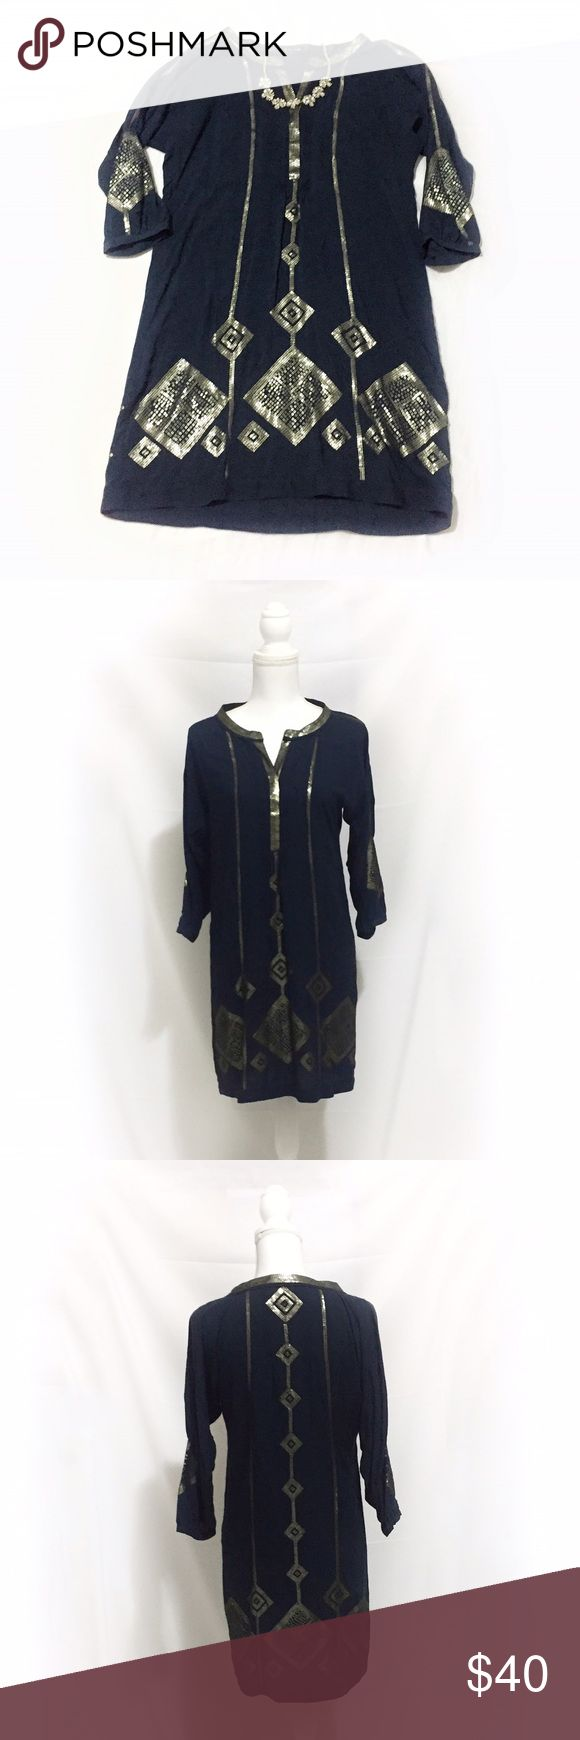 Massimo Dutti | Navy Sequin Shirt Dress | Size: M Massimo Dutti | Navy Sequin Shirt Dress | Size: Medium | Great Condition | Fits Loosely | No Wear or Damage | Pet/Smoke Free Home | Cotton Blend | See Photos for Measurements Massimo Dutti Dresses Long Sleeve